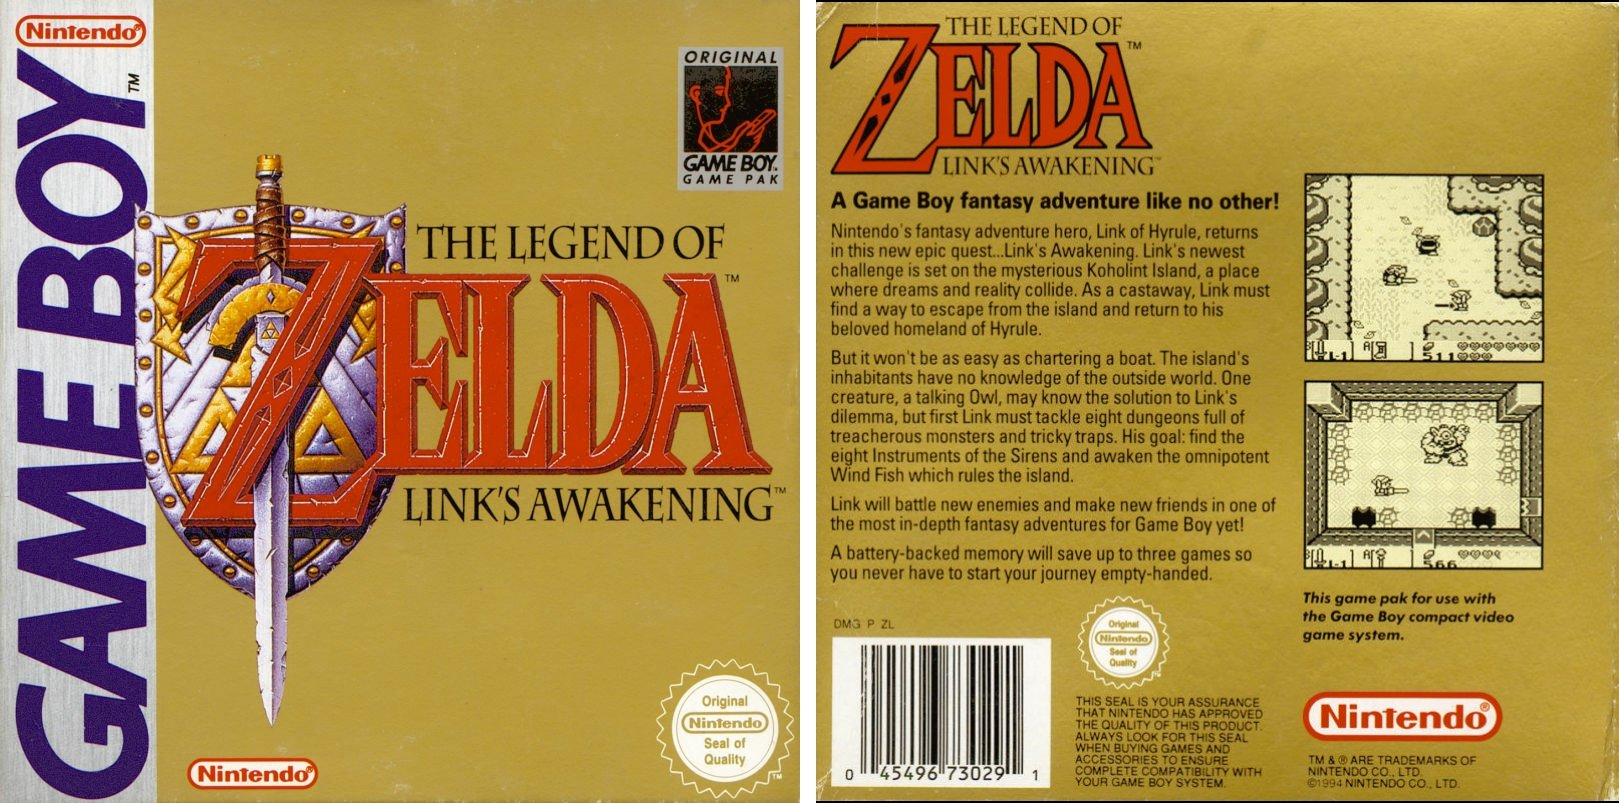 """Image For Post   The fourth game in the Zelda series although it does not take place in Hyrule. After being attacked at sea, Link's ship sinks, and he finds himself stranded on Koholint Island. He awakens to see a beautiful woman looking down at him. He soon learns the island has a giant egg on top of a mountain that the Wind Fish inhabits deep inside. Link is told to """"awaken the wind fish and all will be answered,"""" so Link sets out on another quest."""